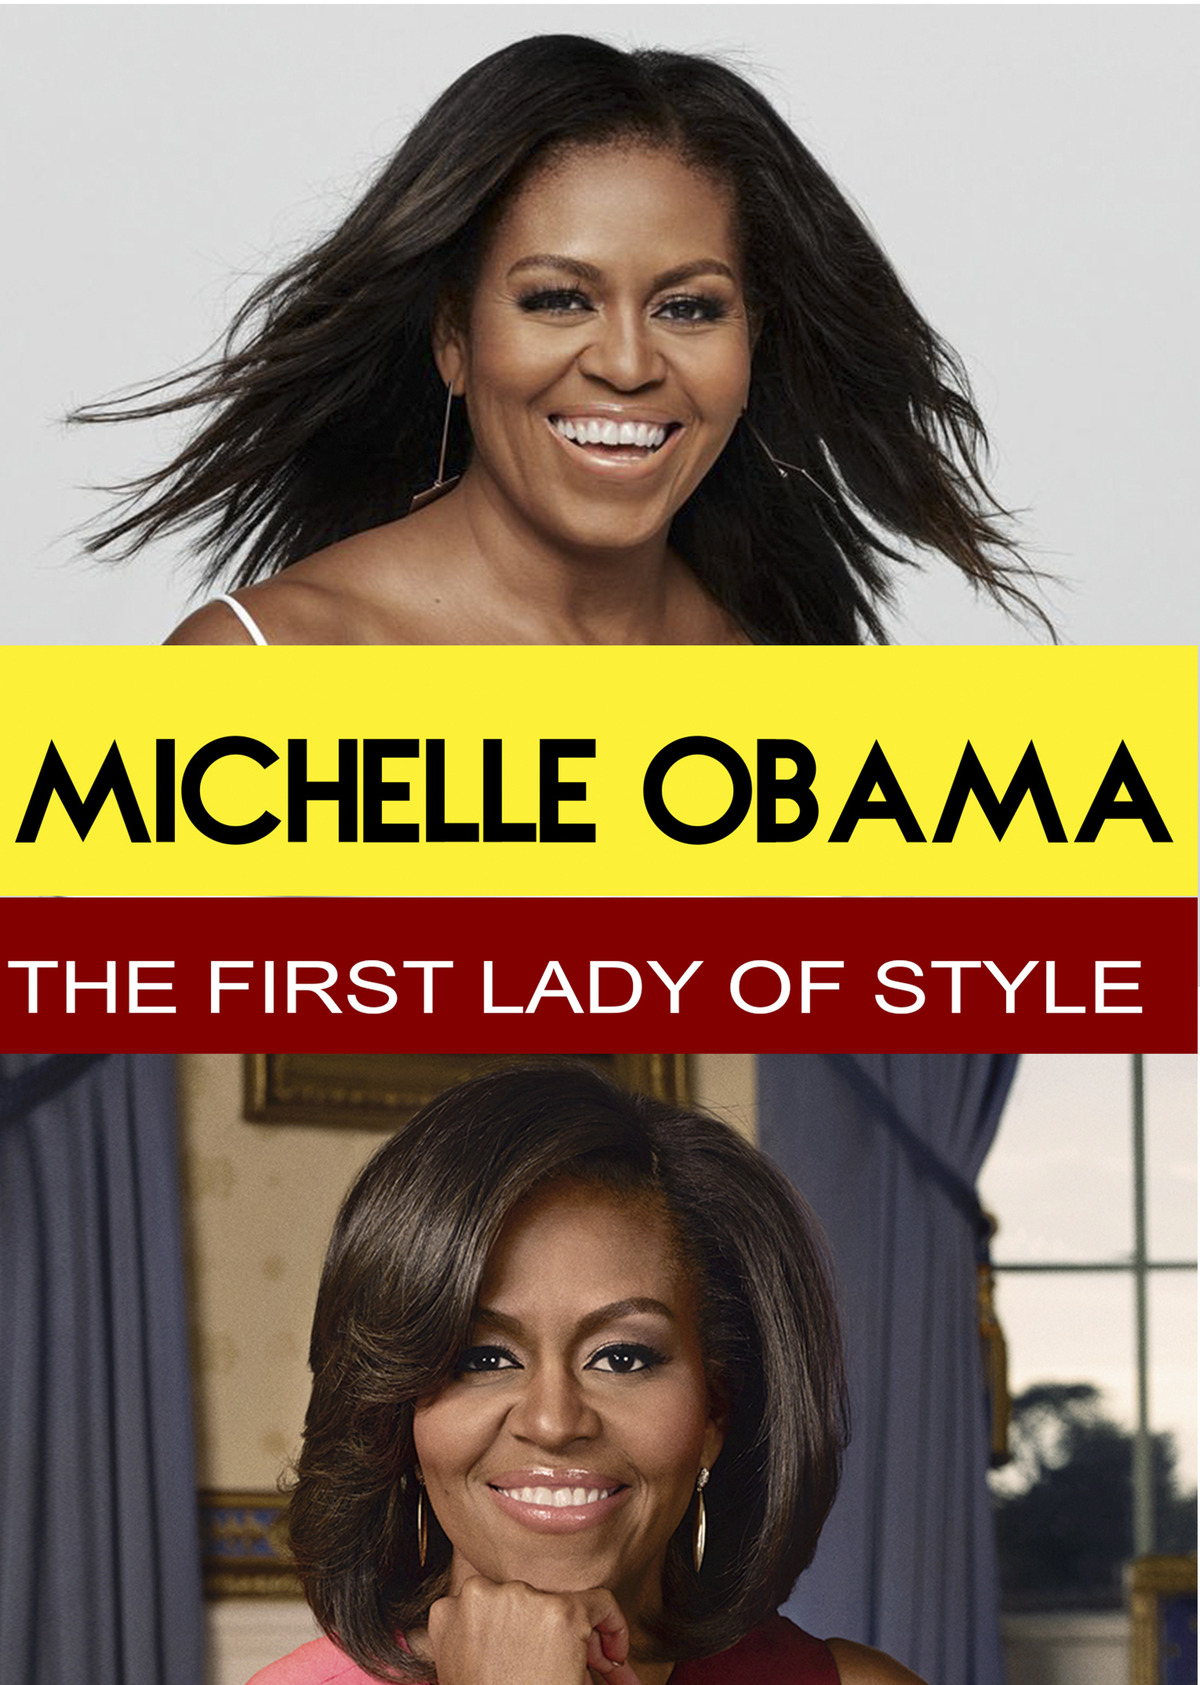 L7817 - Michelle Obama - The First Lady of Style